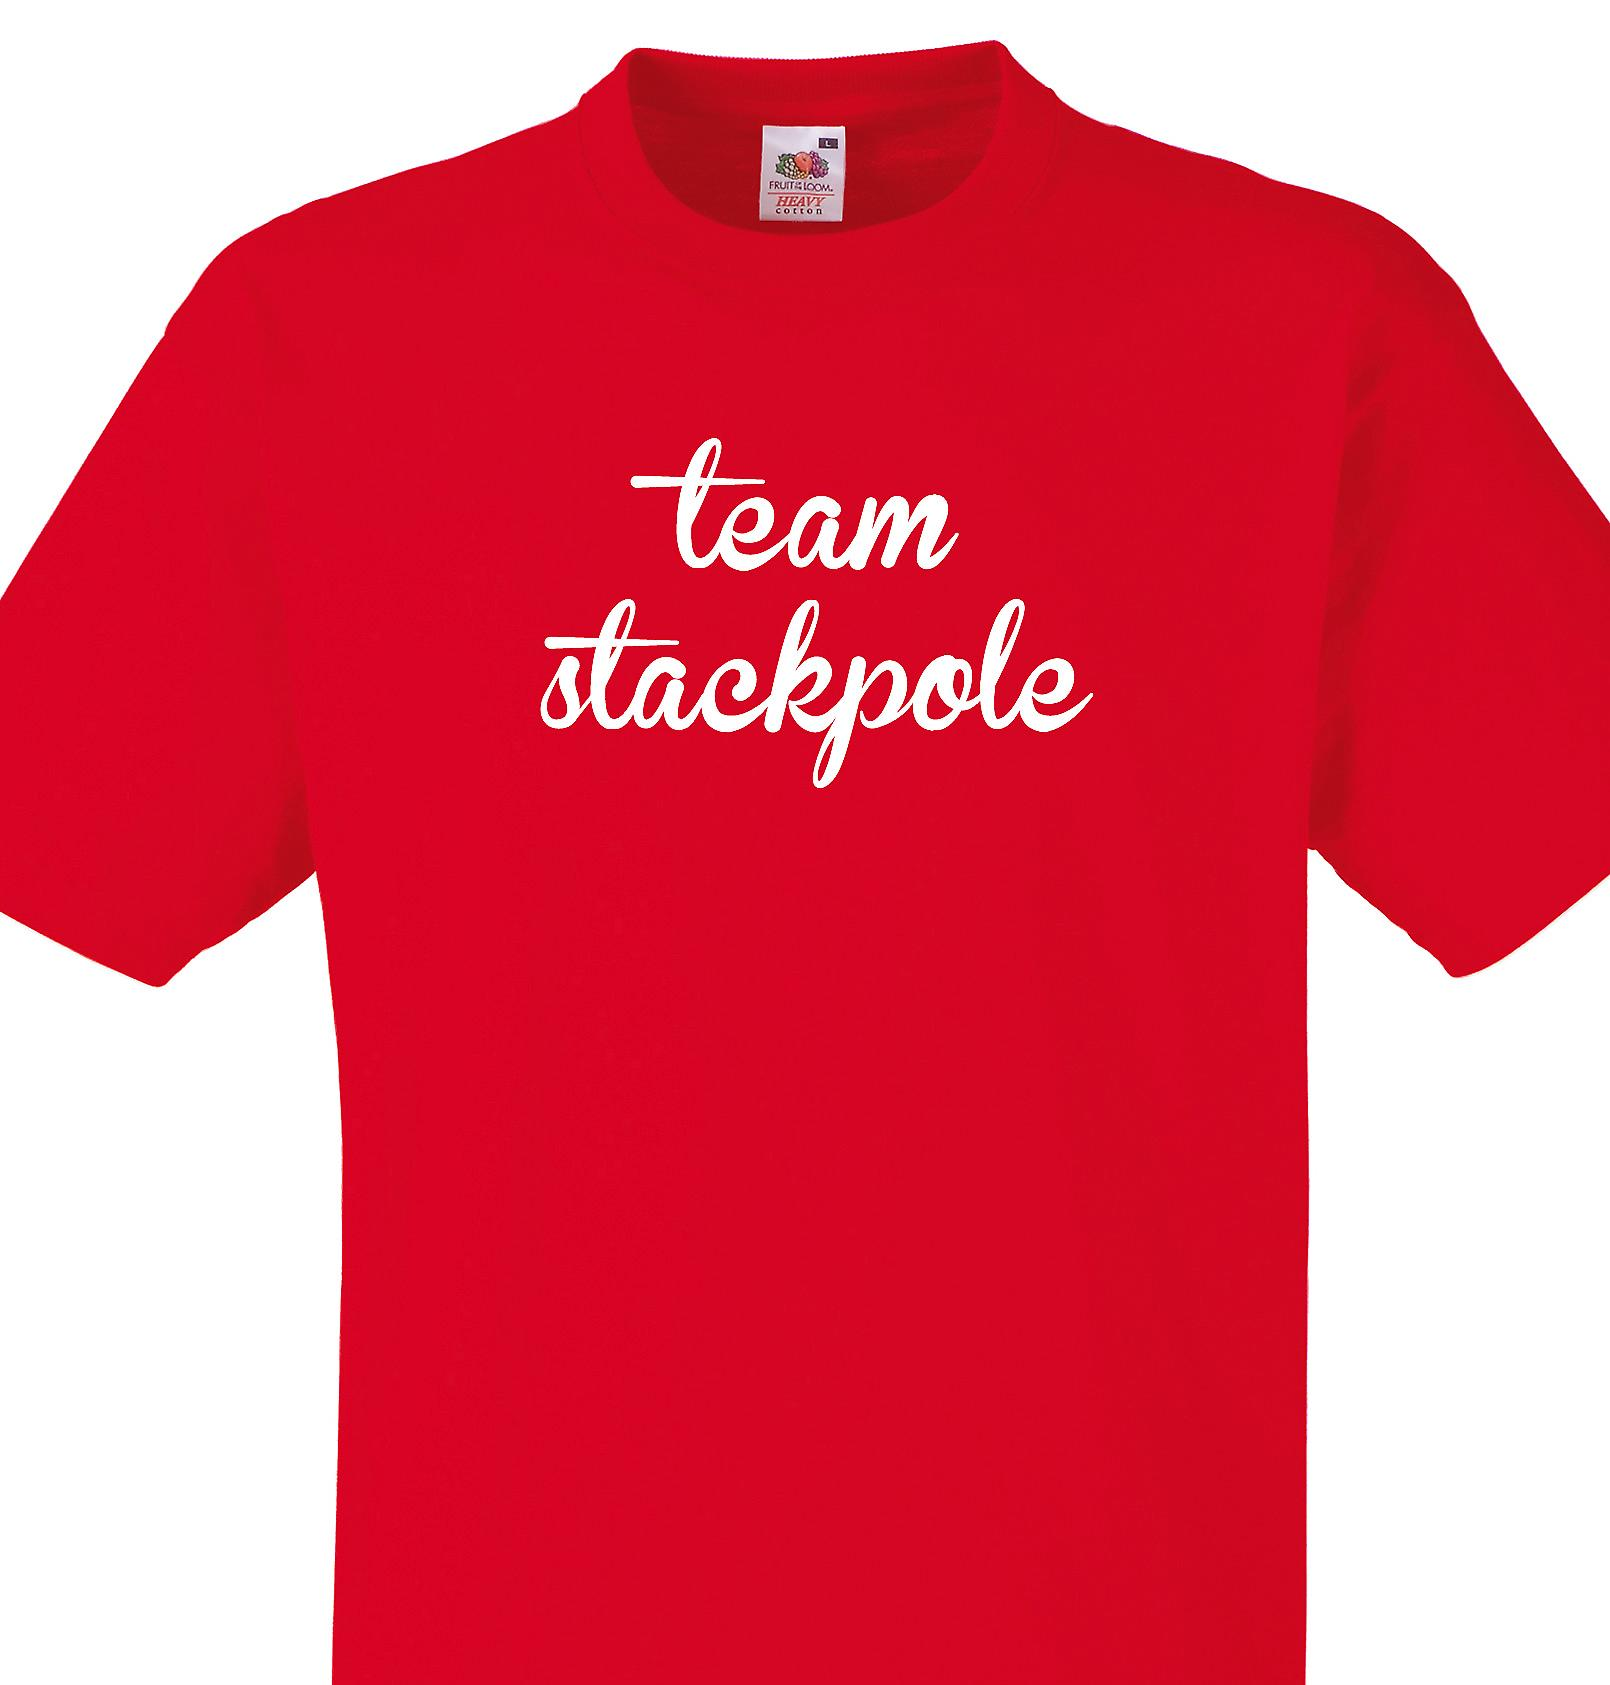 Team Stackpole Red T shirt